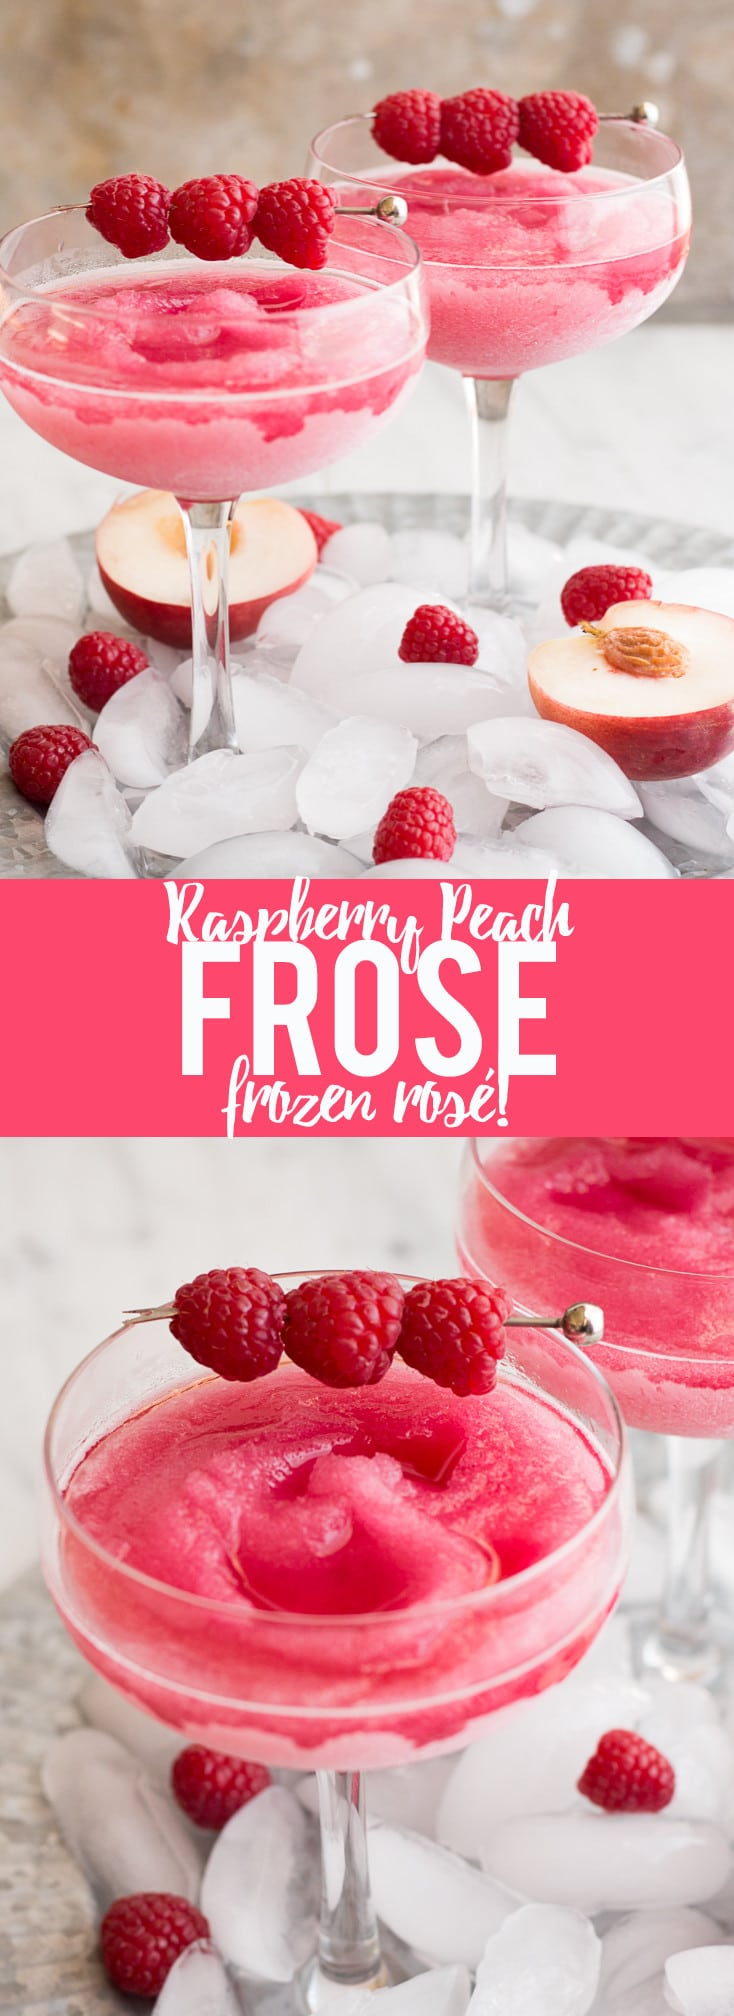 "Your summer drink dreams came true! Raspberry Peach Frosé (Frozen rosé) is a frozen rosé blended into a frosty pink drink that will keep you cool while you say ""Yes way rosé!"""